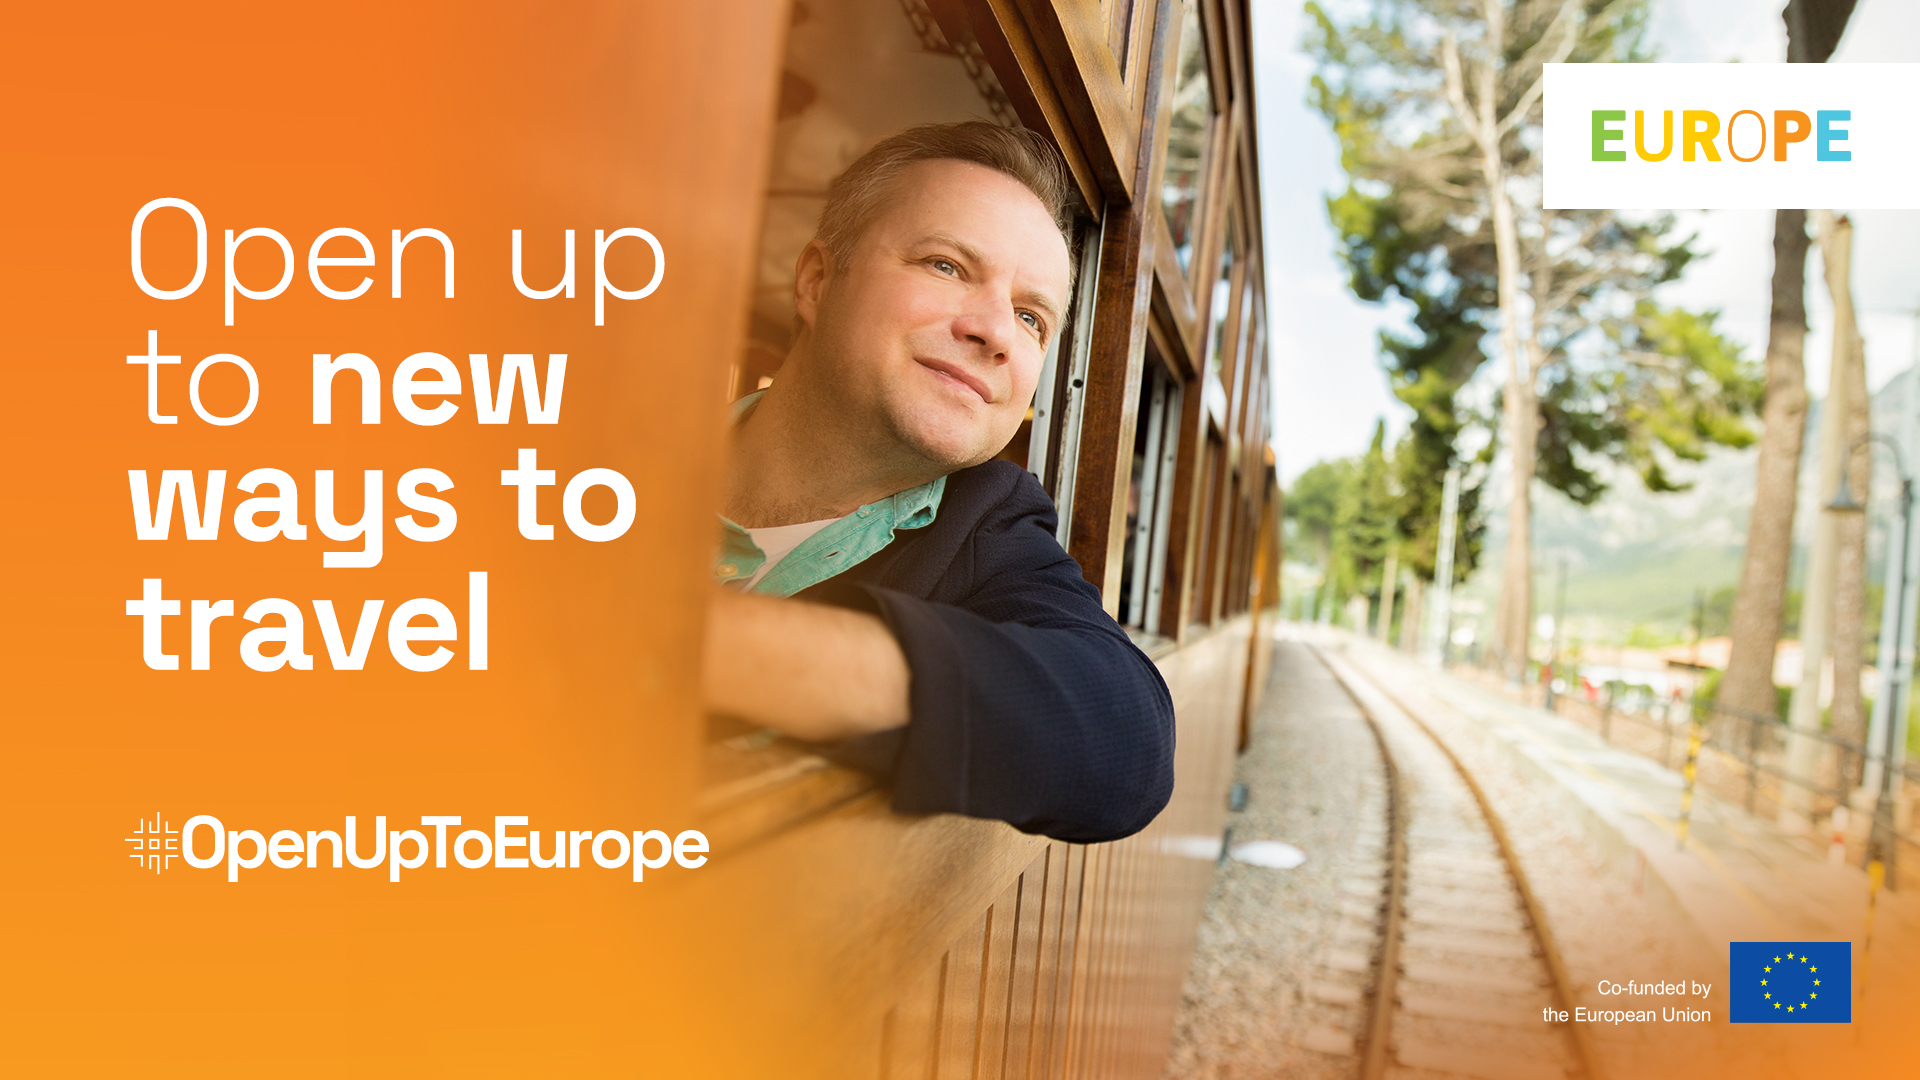 The European Travel Commission partners with Euronews to support the travel and tourism sector in Europe